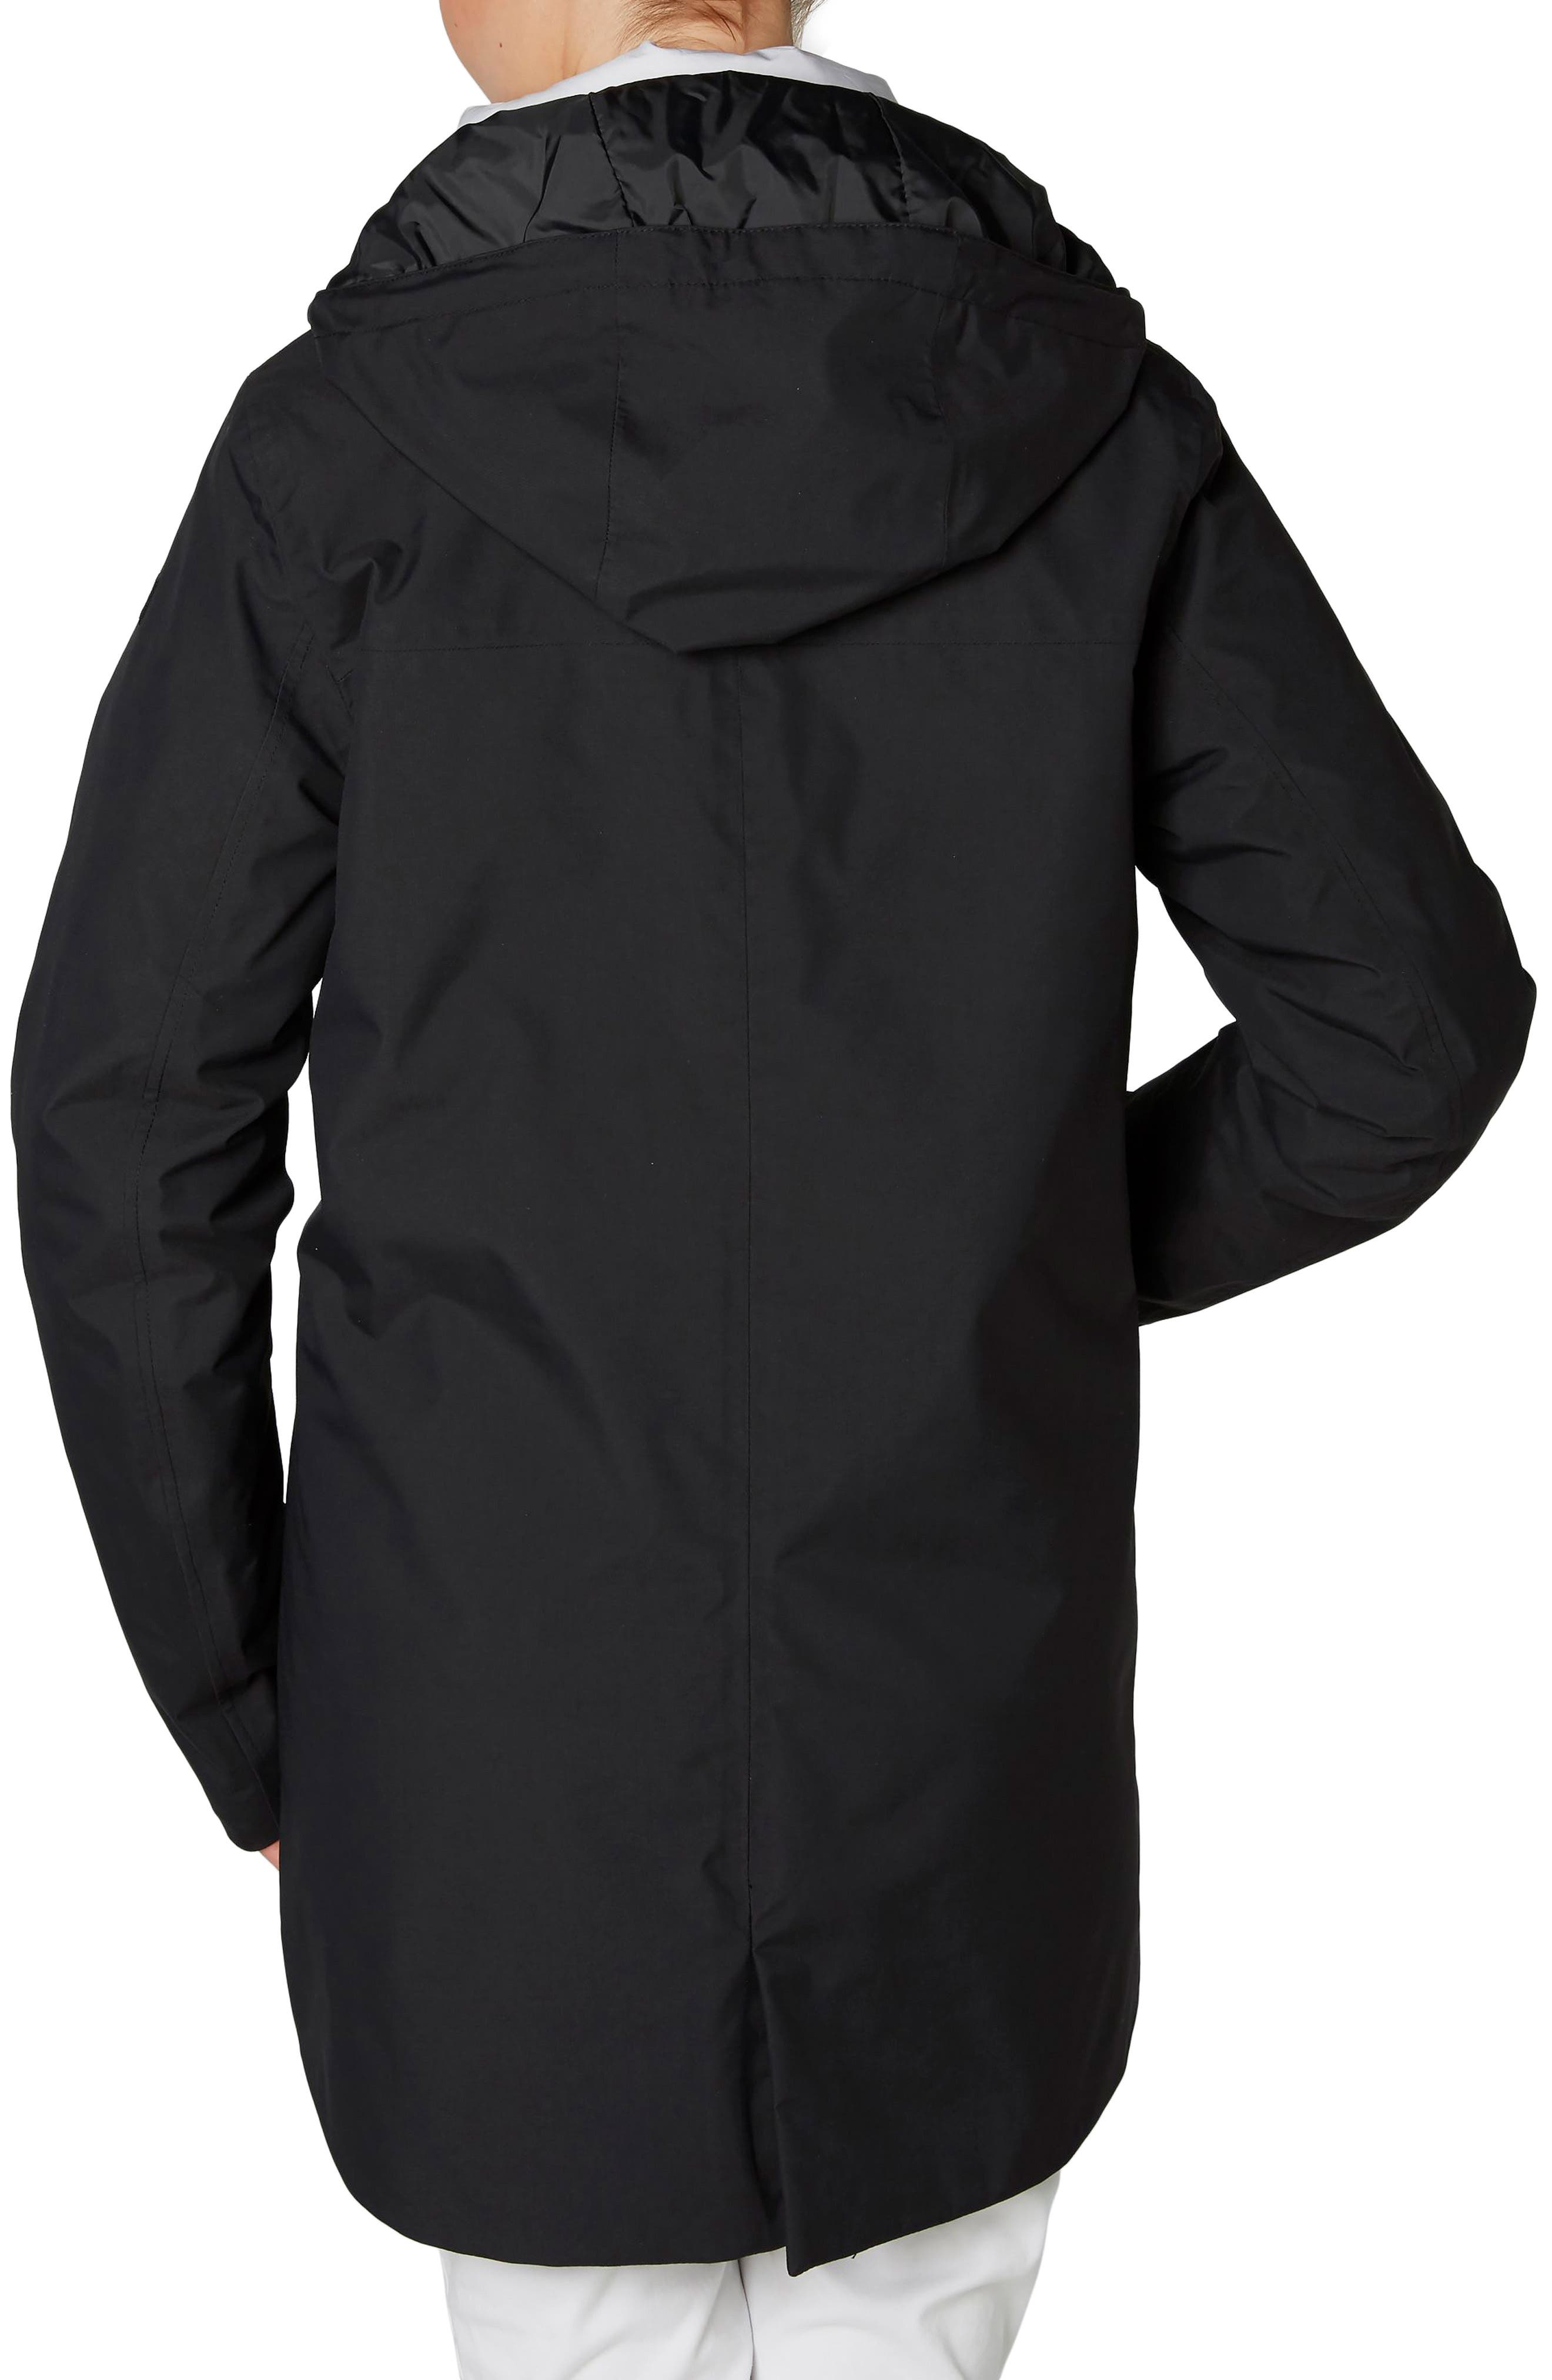 Waterford Weatherproof Hooded Parka,                             Alternate thumbnail 2, color,                             010